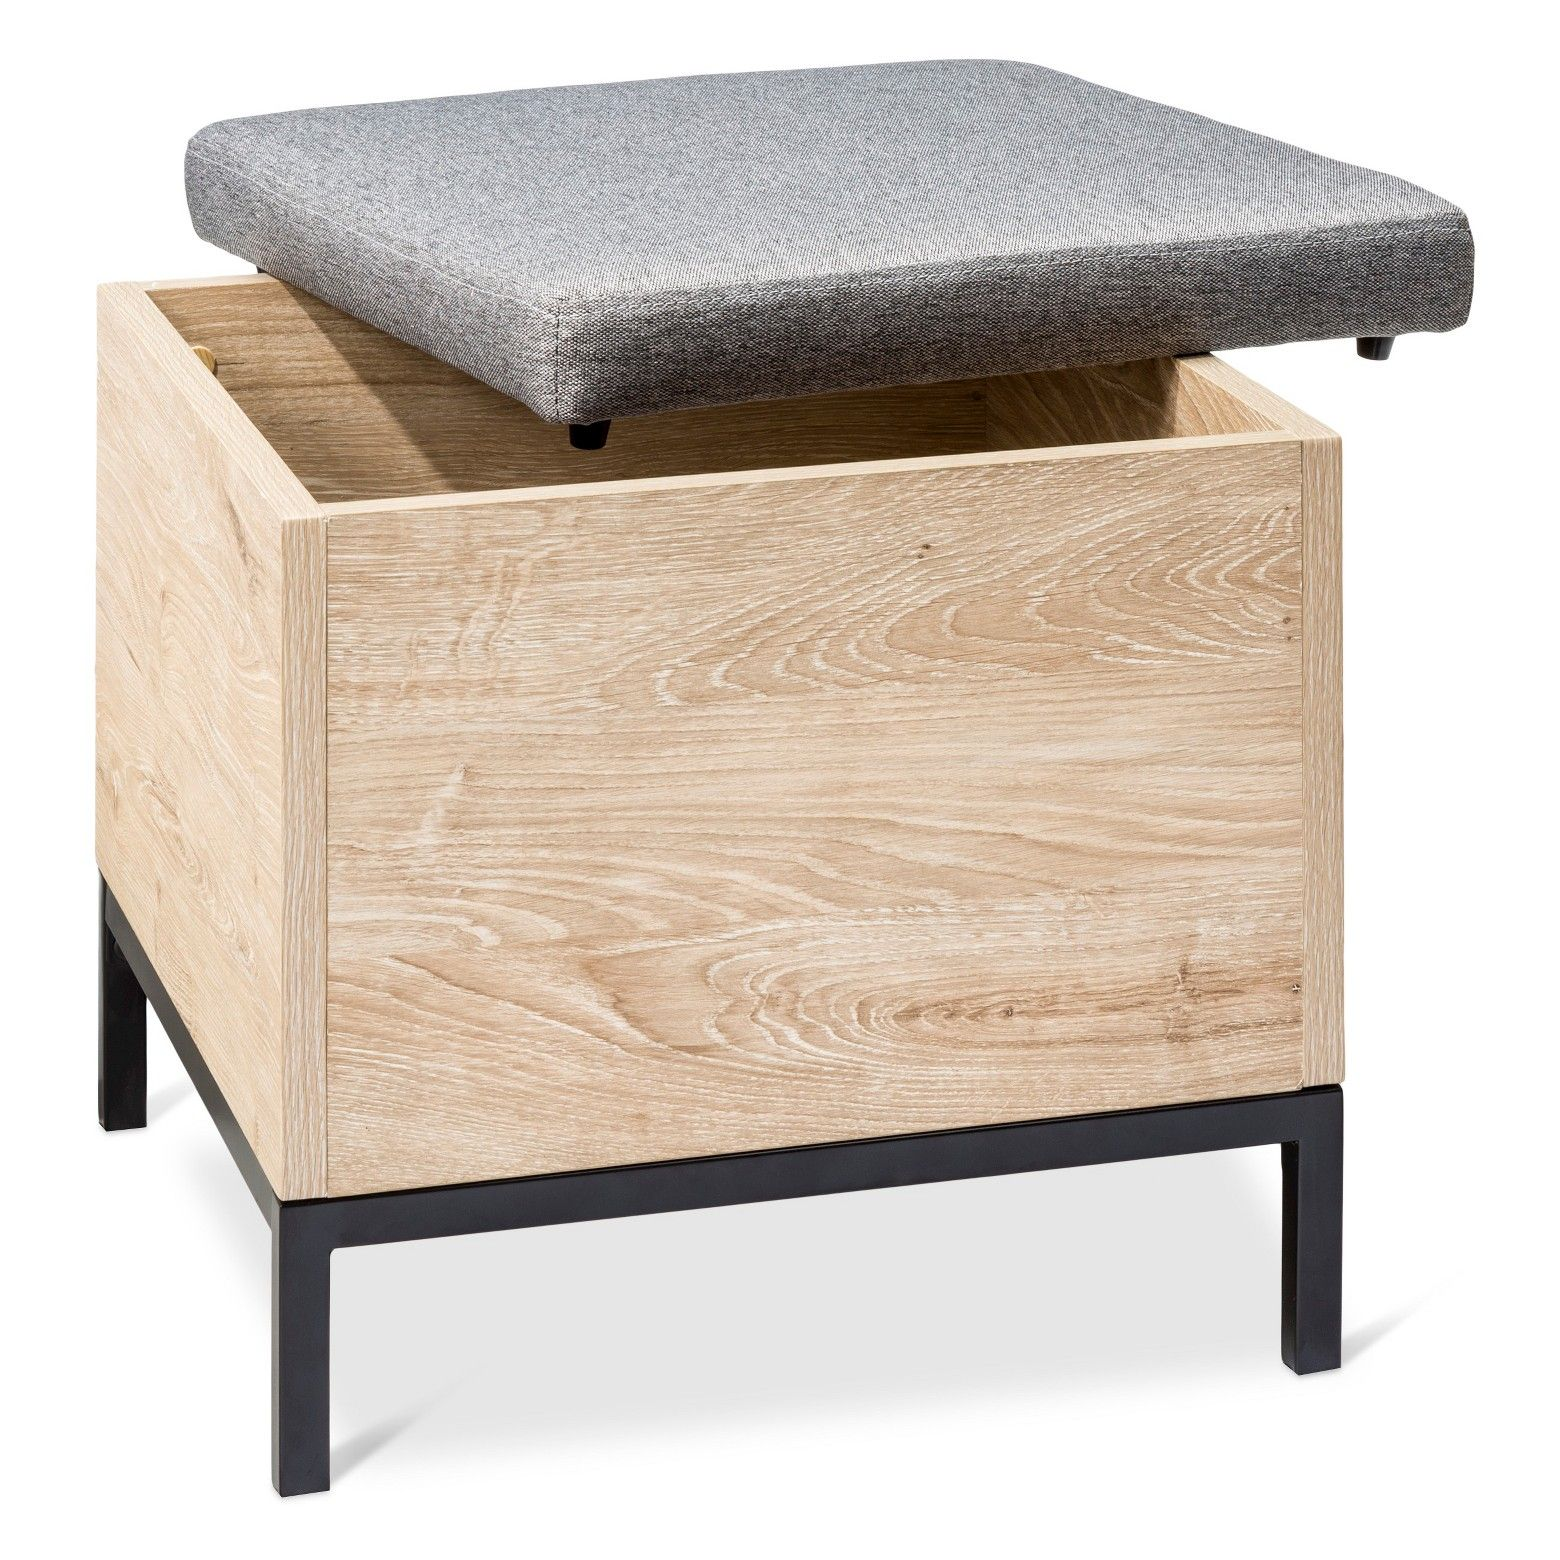 Charmant Darley Storage Cube Is Part Storage, Part Seating